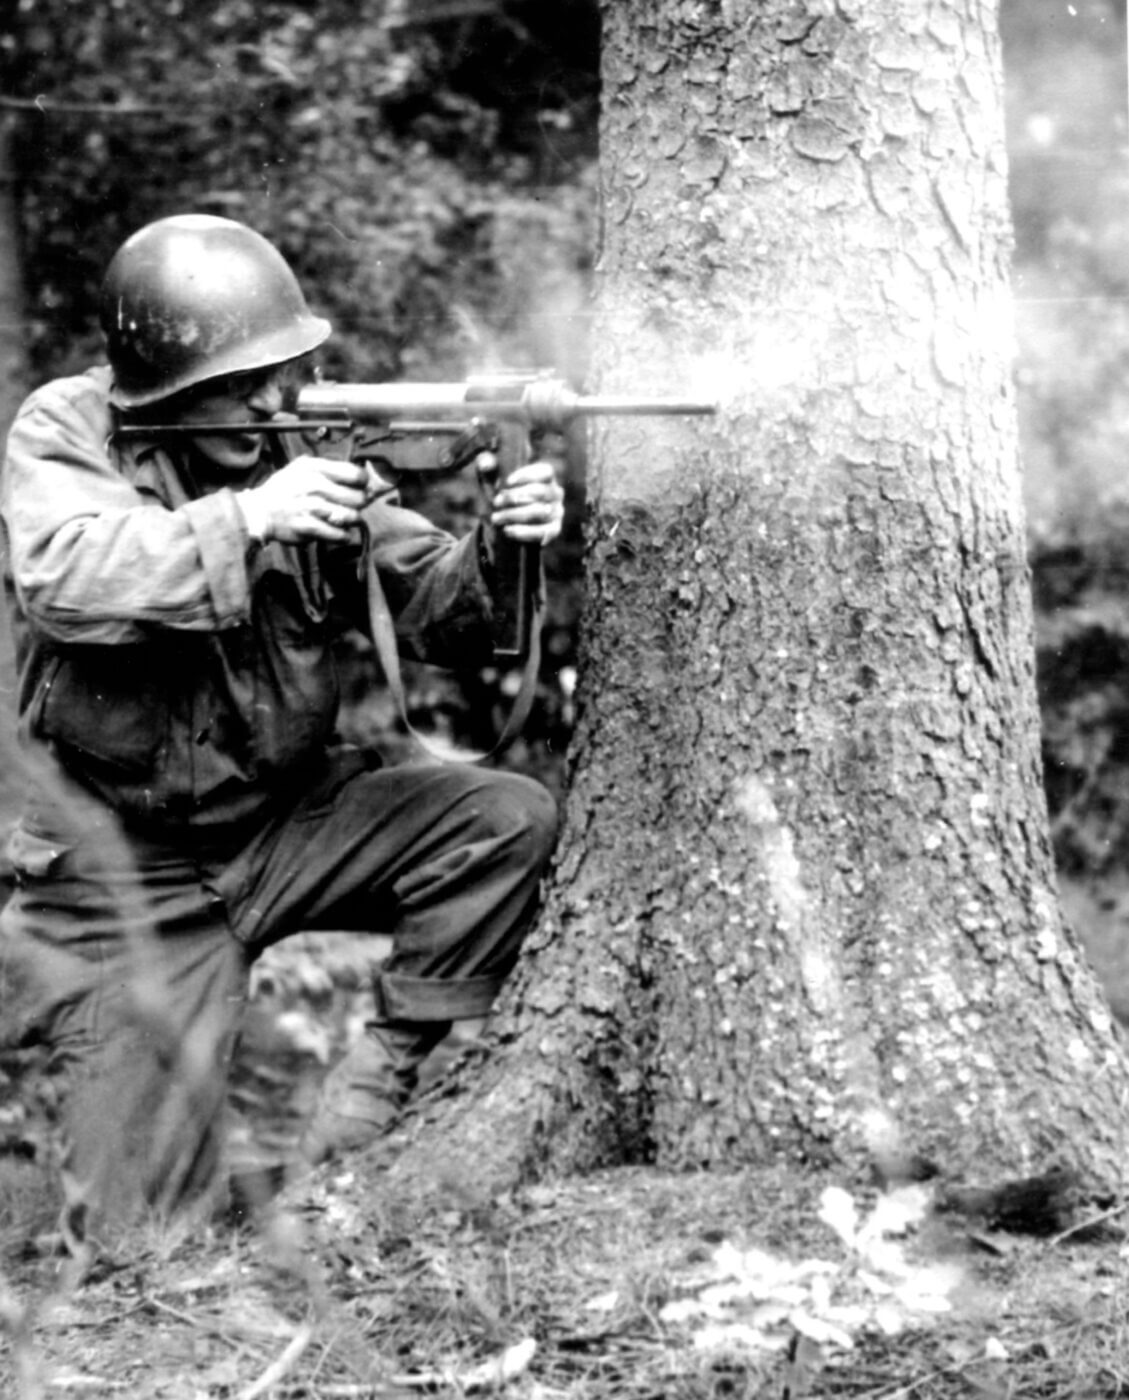 Soldier shooting M3 SMG in World War II